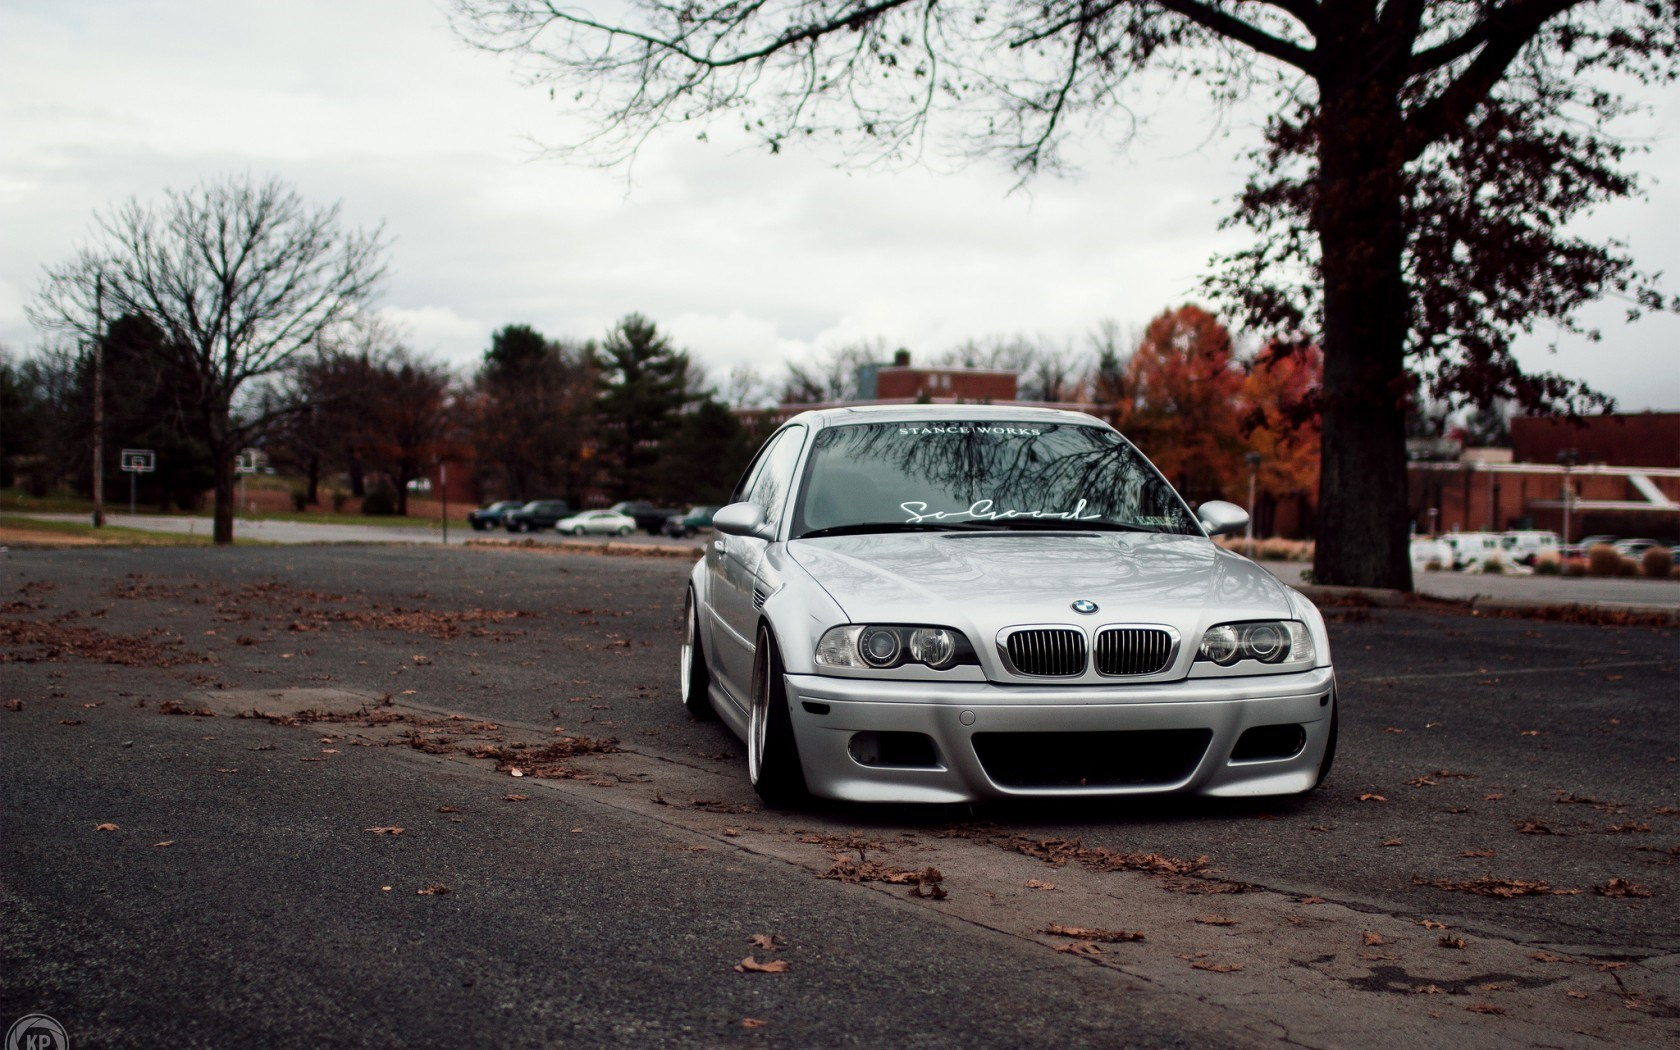 Bmw m3 e46 parking wallpaper 1680x1050 16161 bmw m3 e46 parking voltagebd Gallery